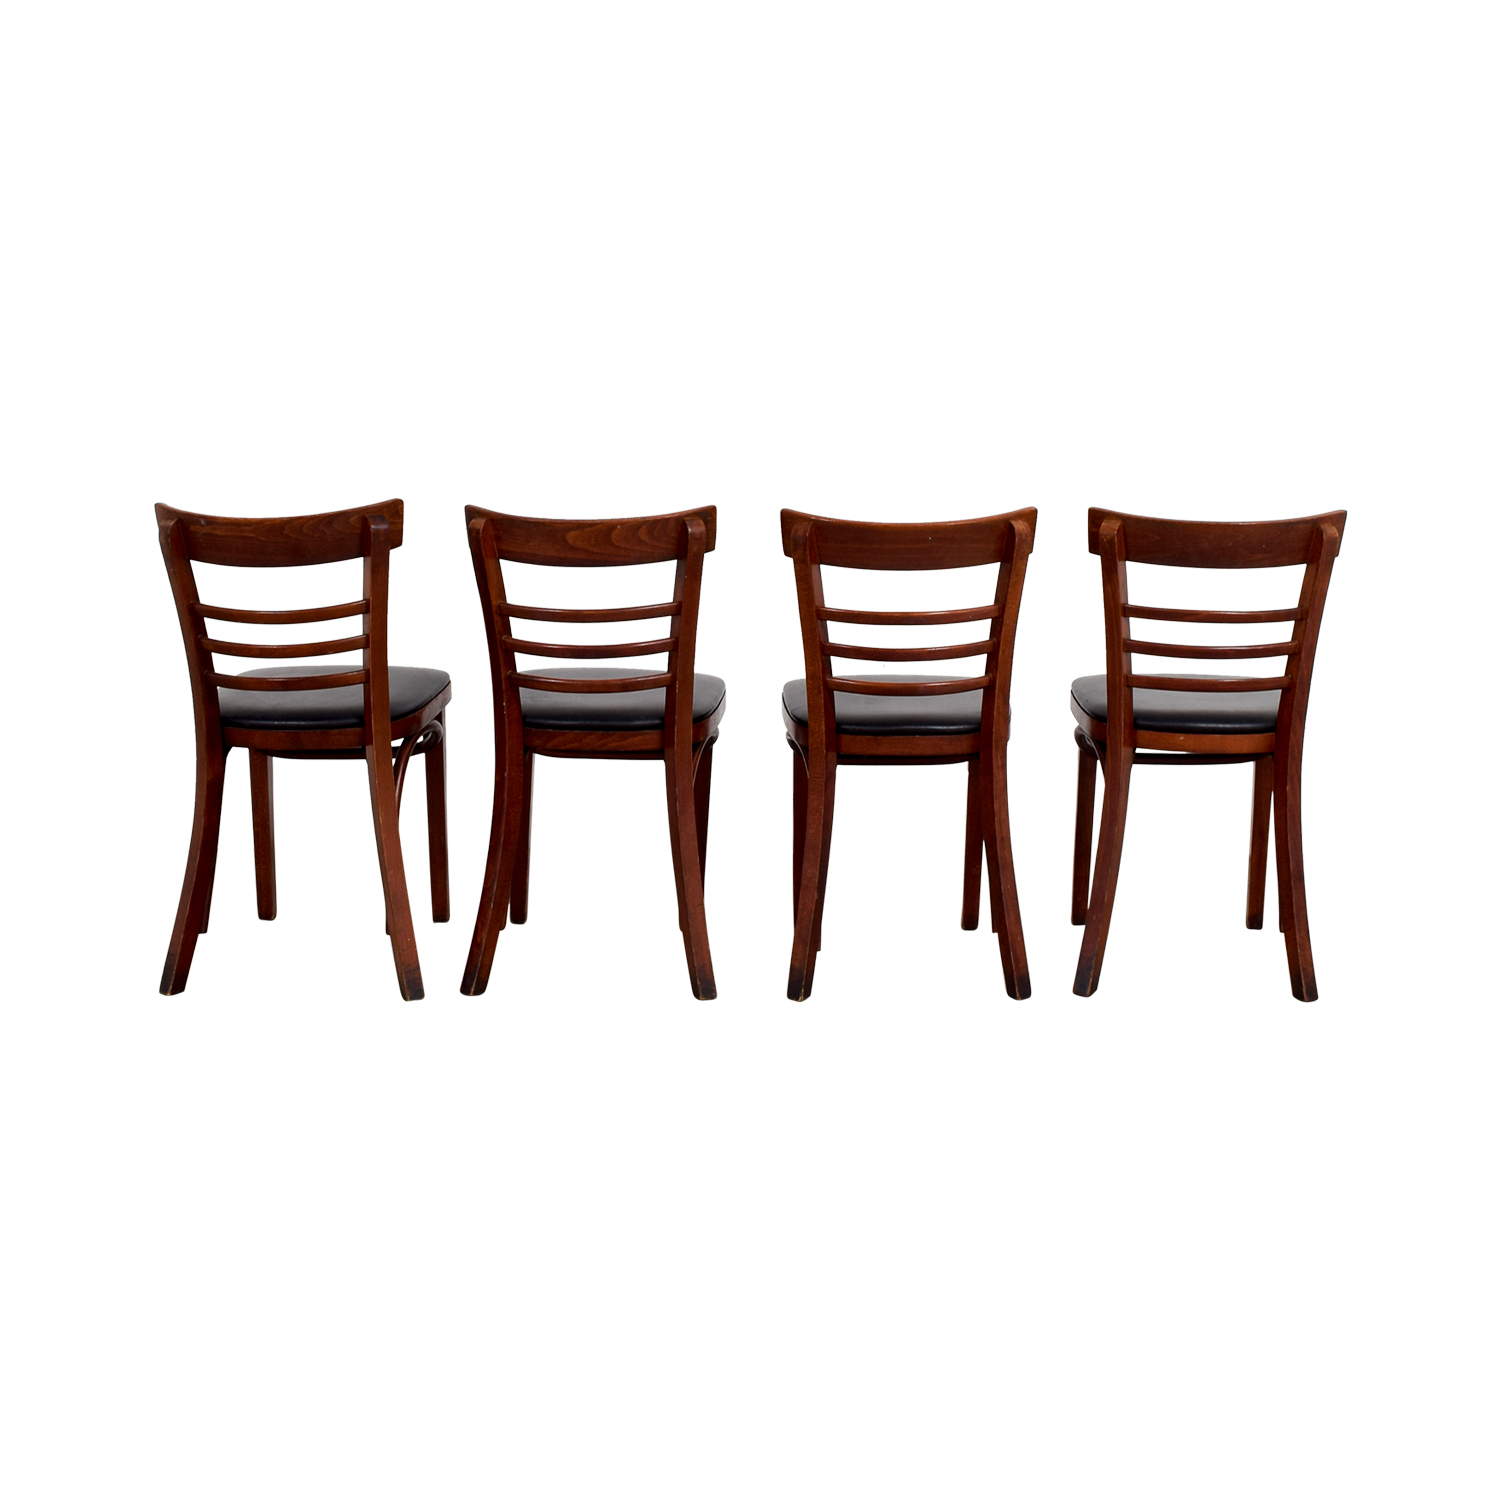 Wood and Black Leather Upholstered Chairs / Dining Chairs